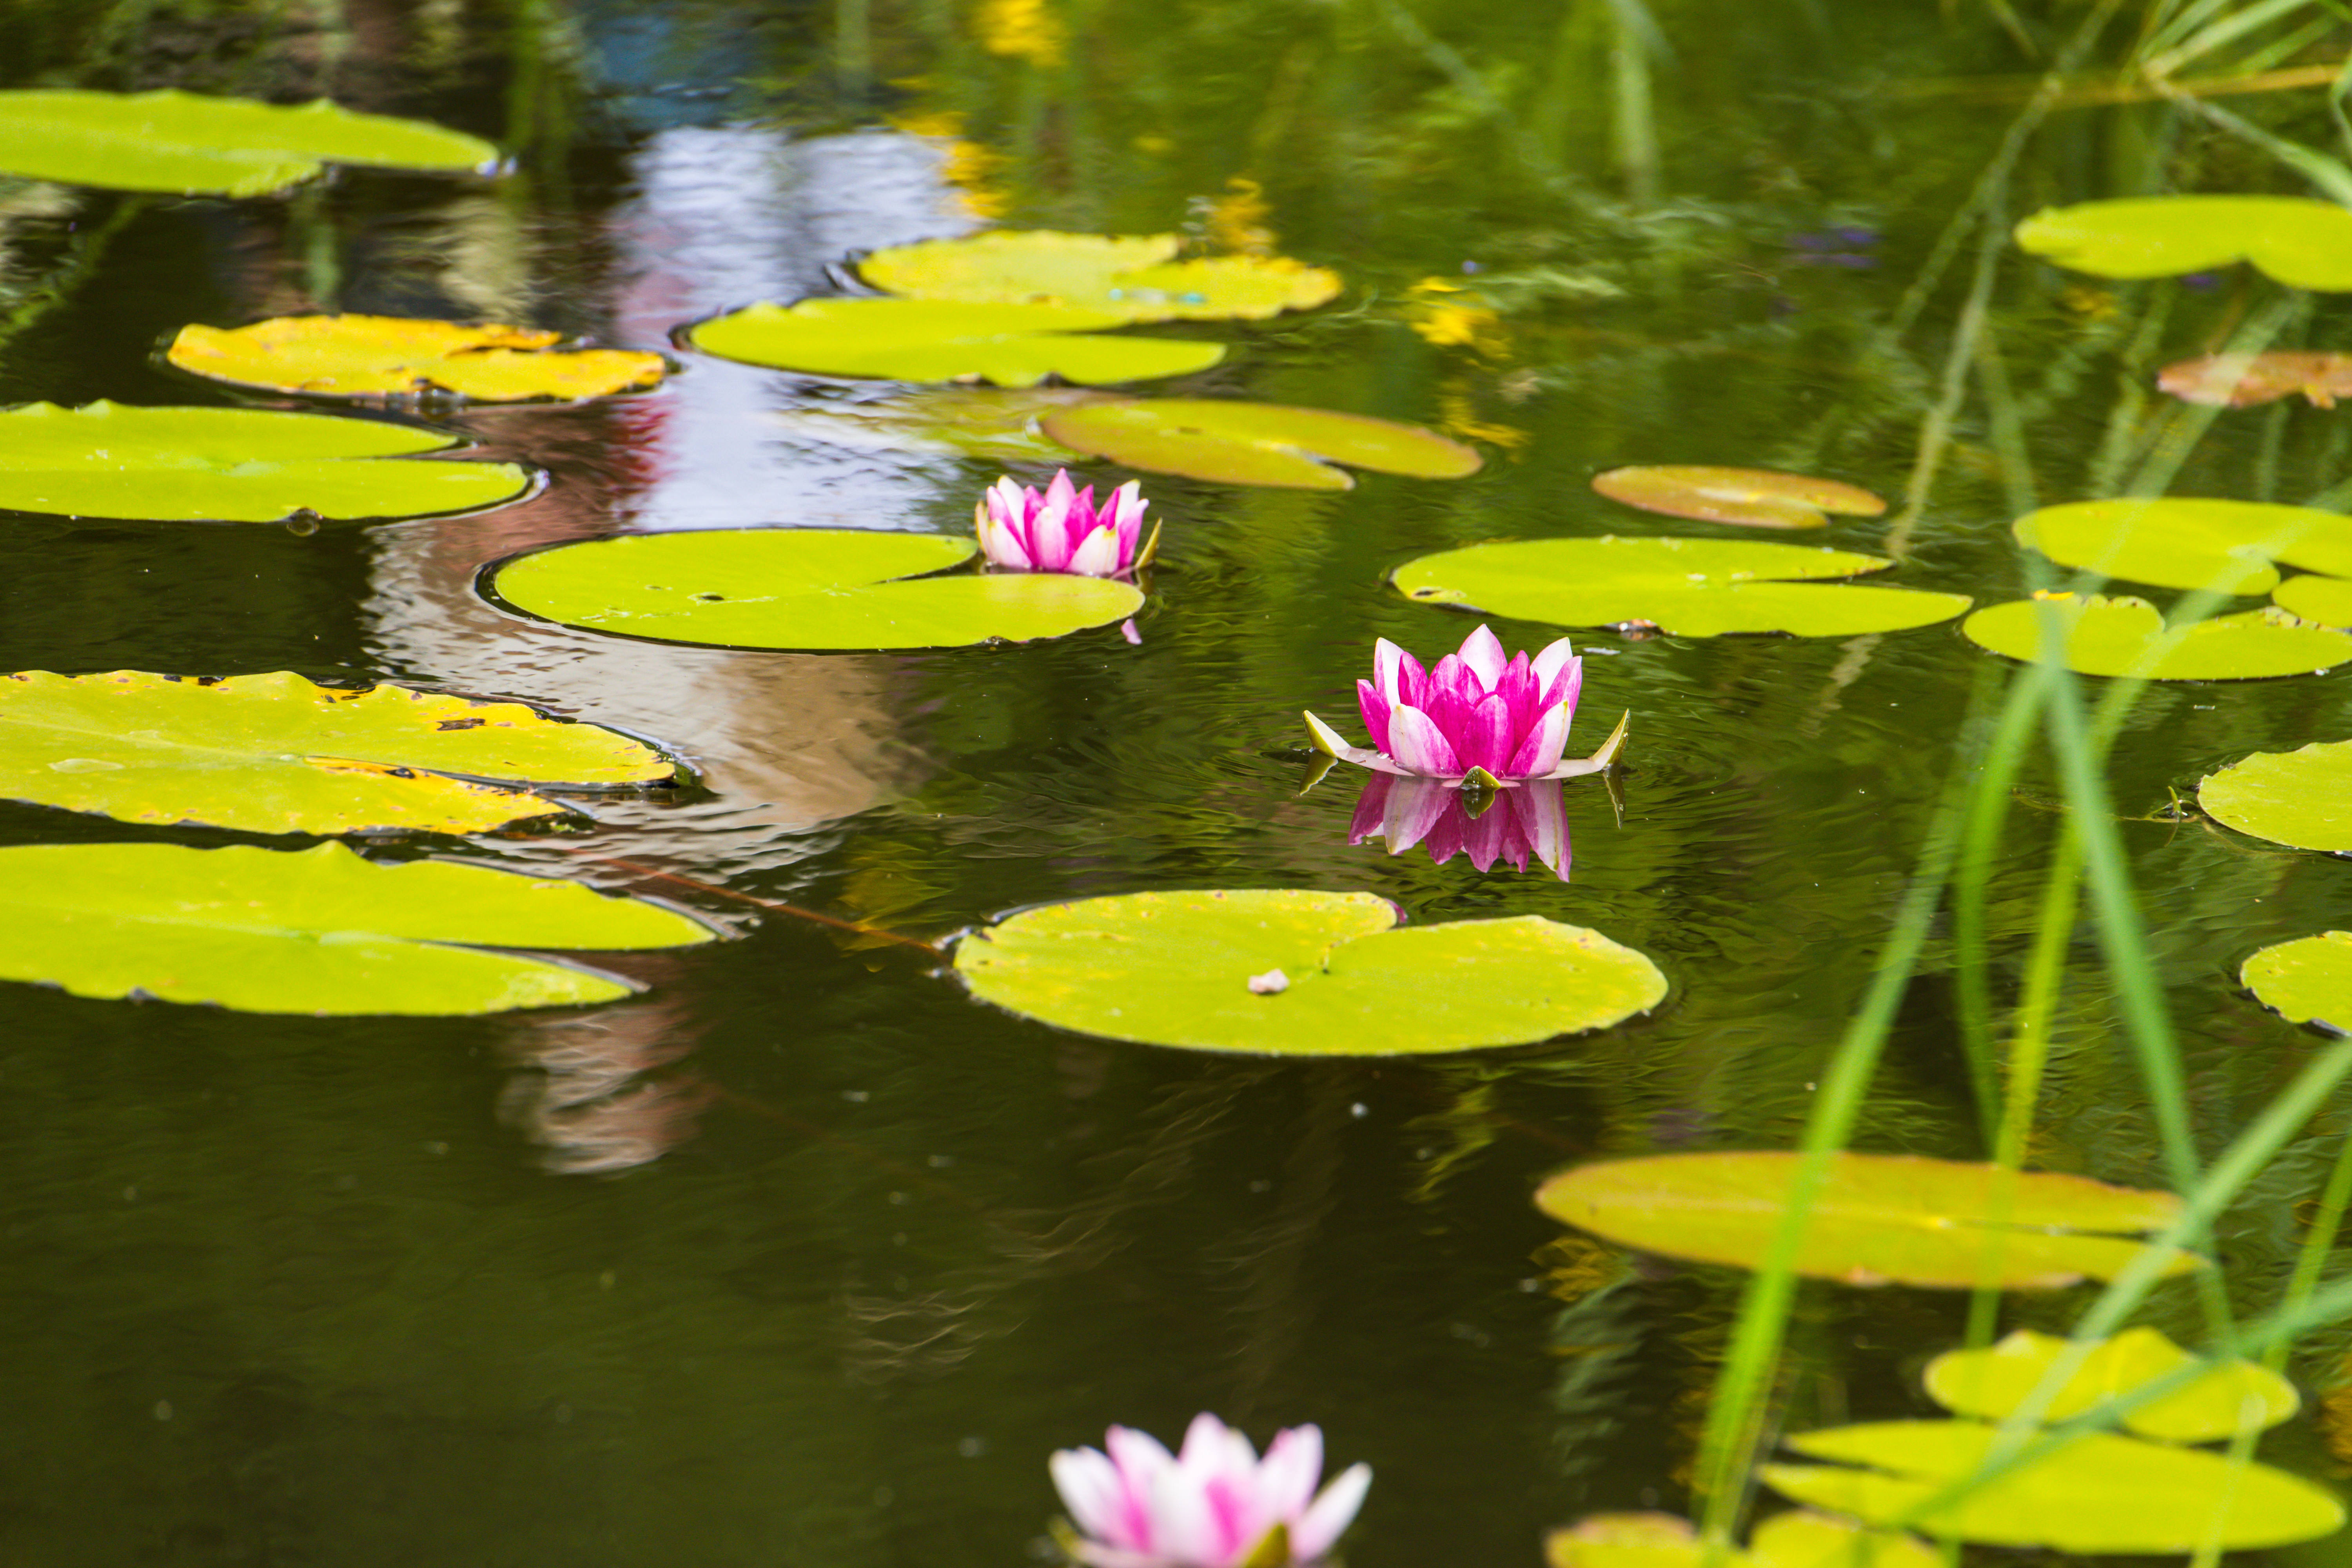 52253 download wallpaper Flowers, Water, Leaves, Lotus, Basin screensavers and pictures for free